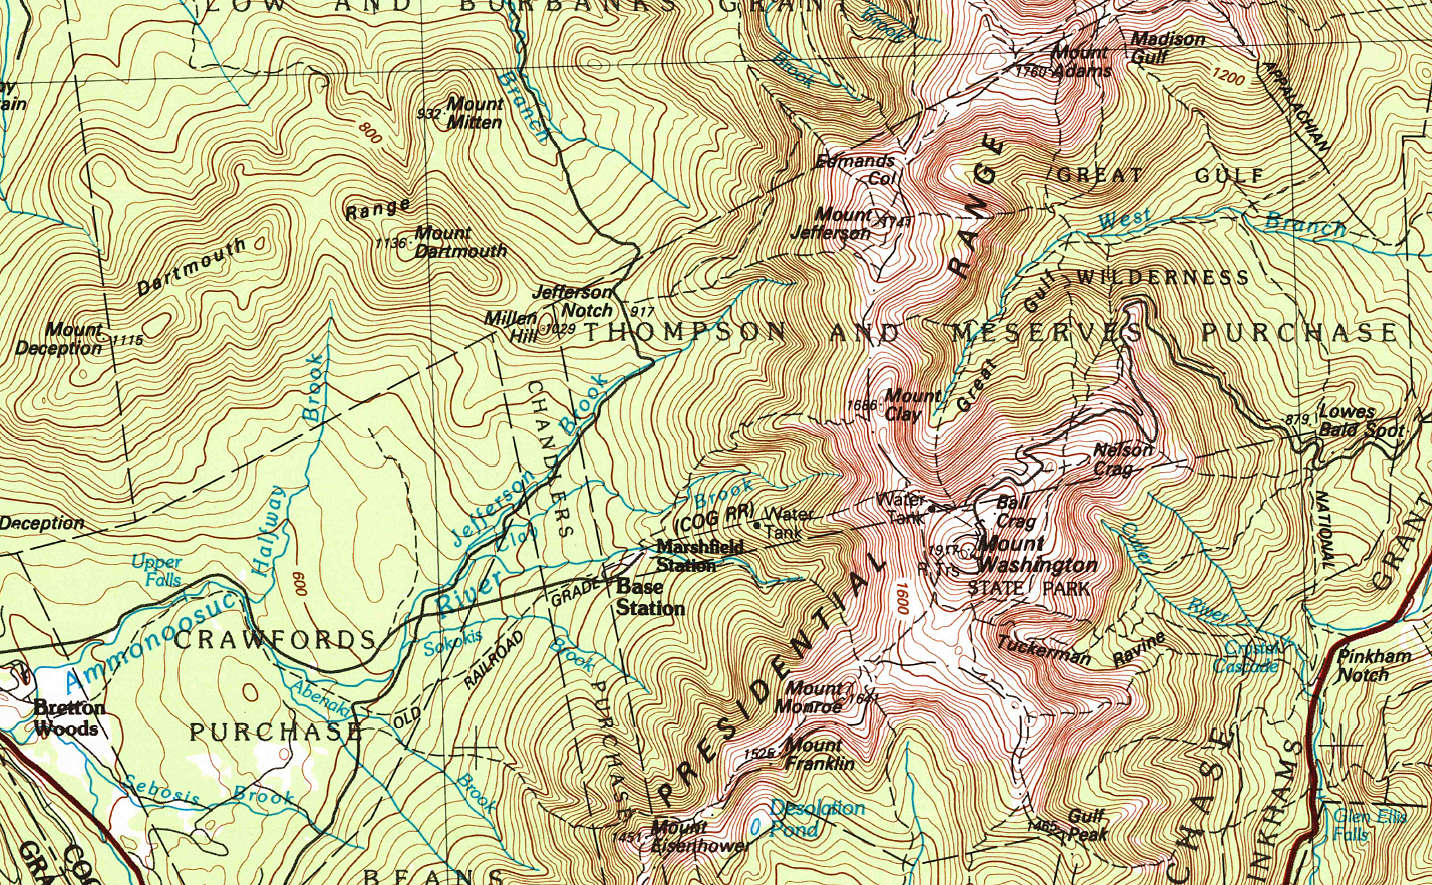 Contour Lines On A Topographic Map